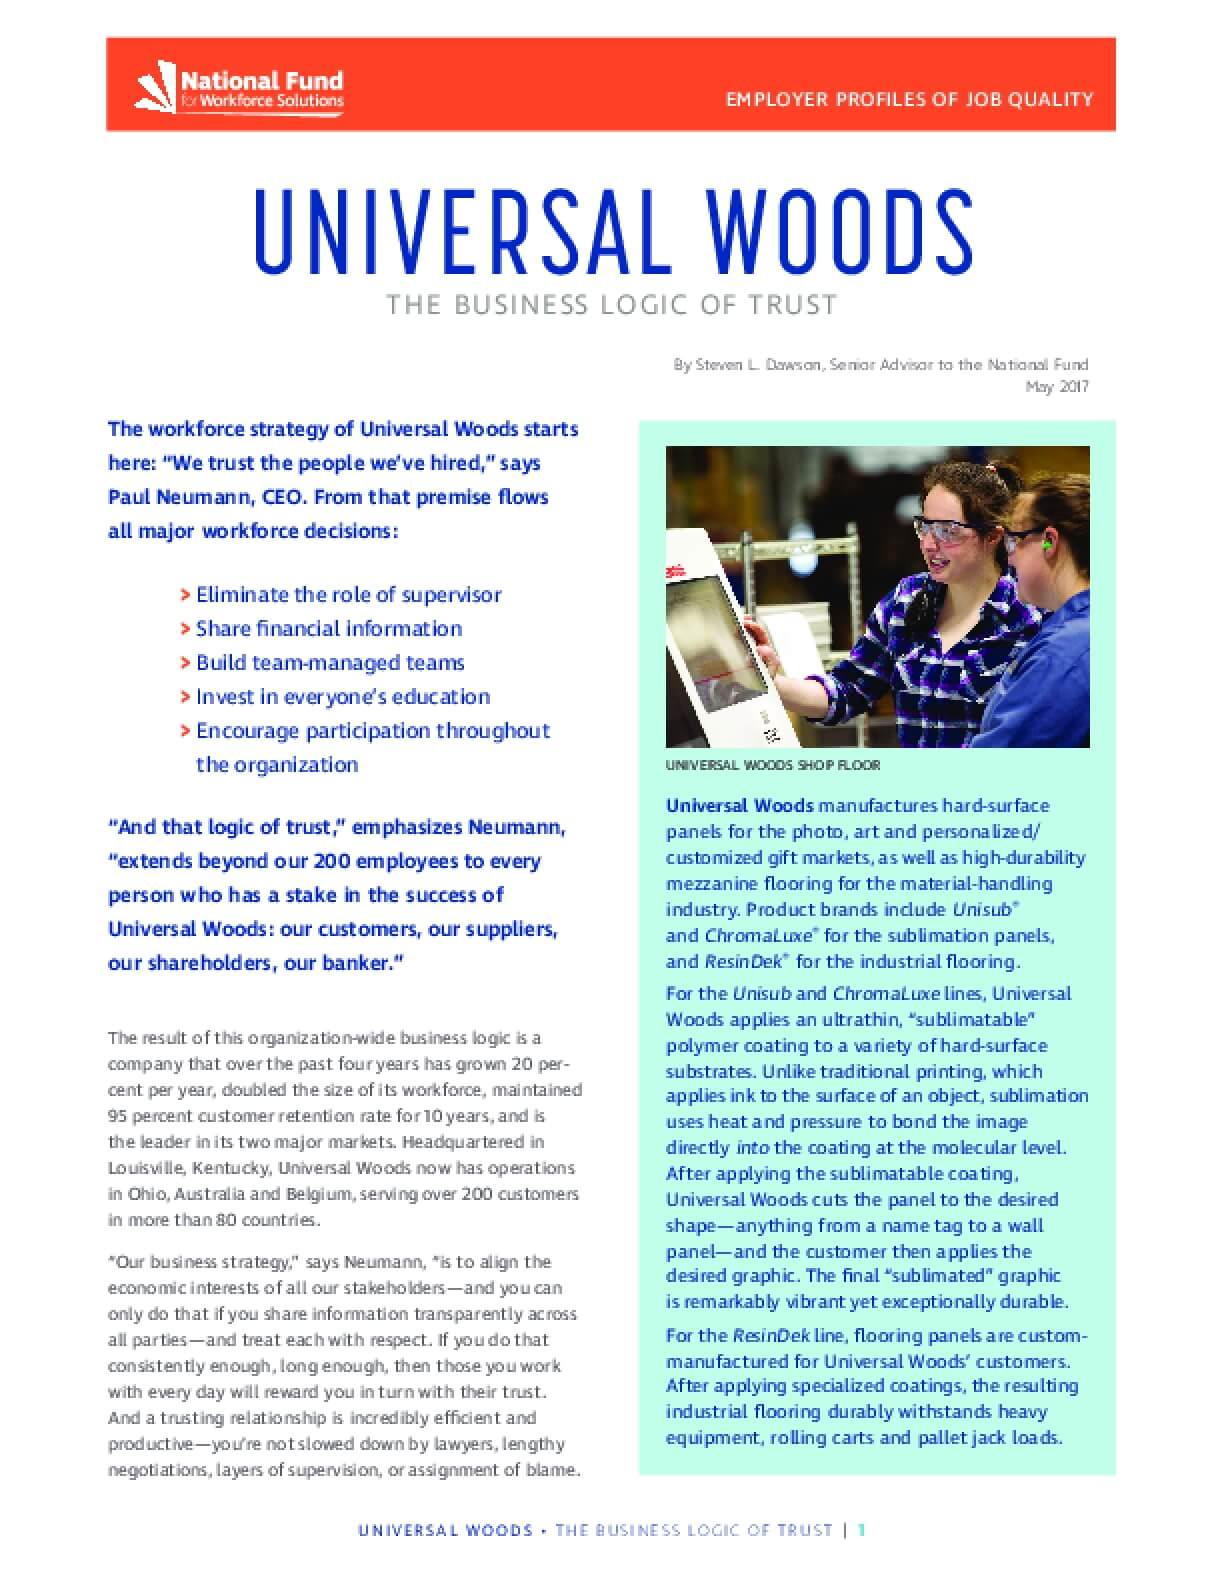 Universal Woods: Business Logic of Trust